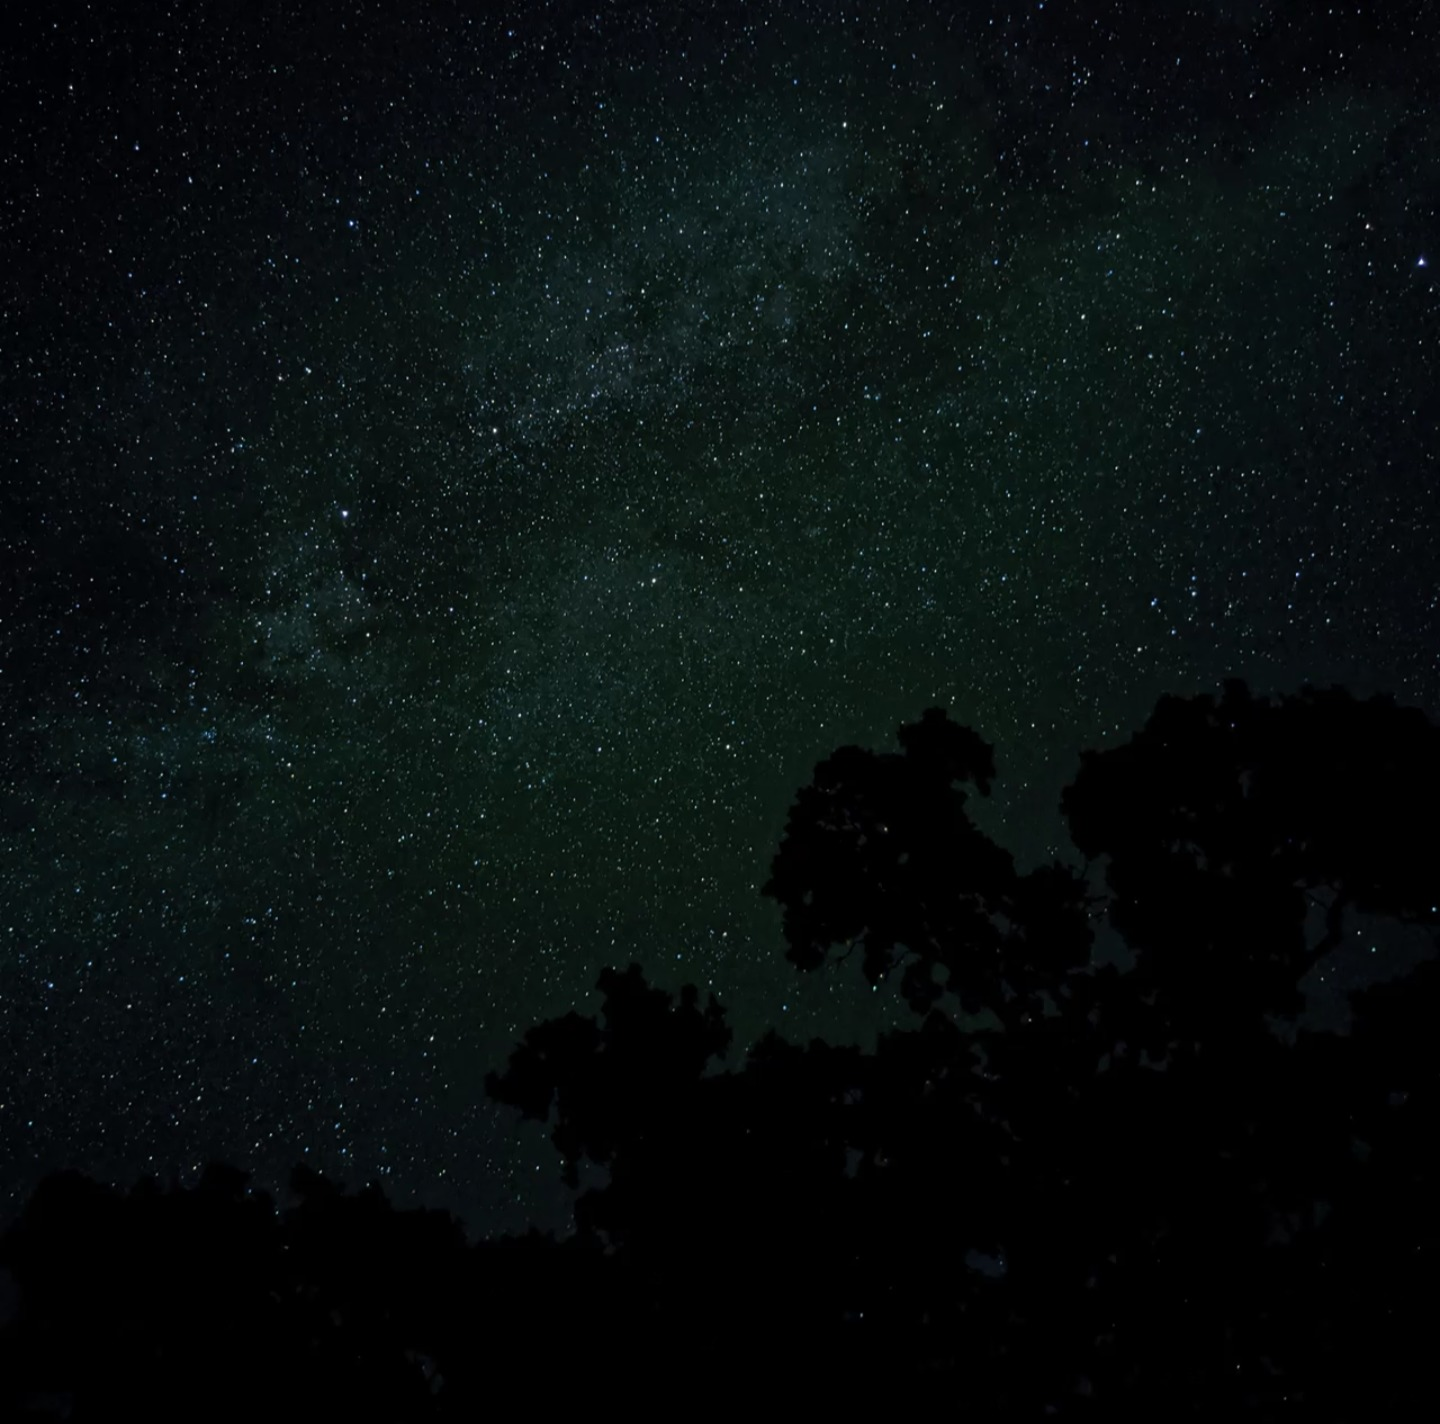 Pixel 3およびPixel 3aデバイスでも星空撮影(Astrophotography)モード